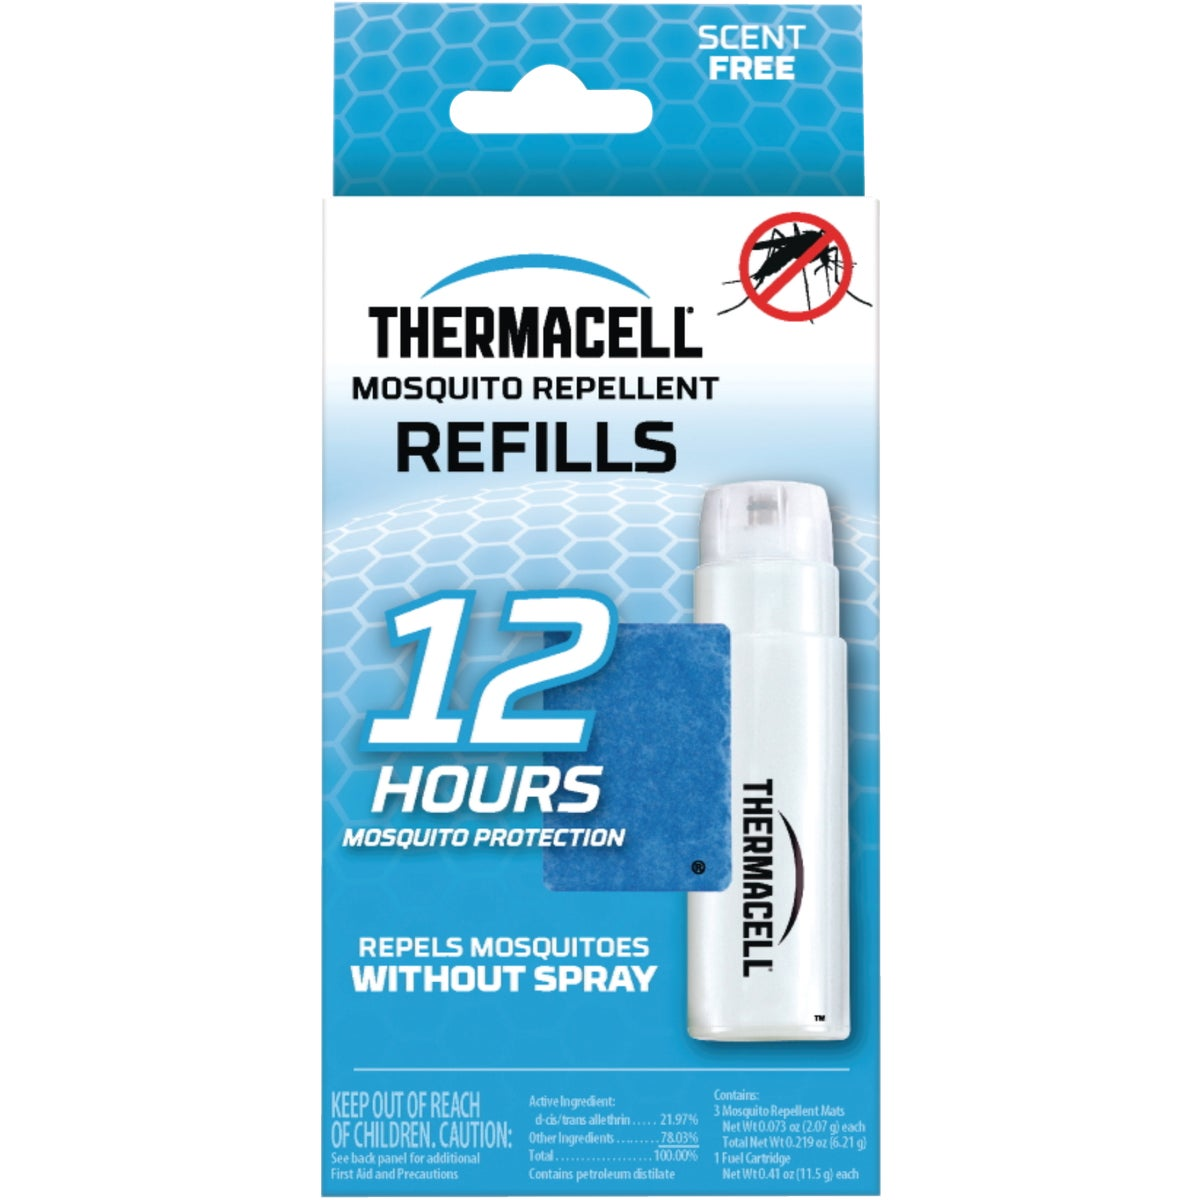 1 PAK THERMACELL REFILL